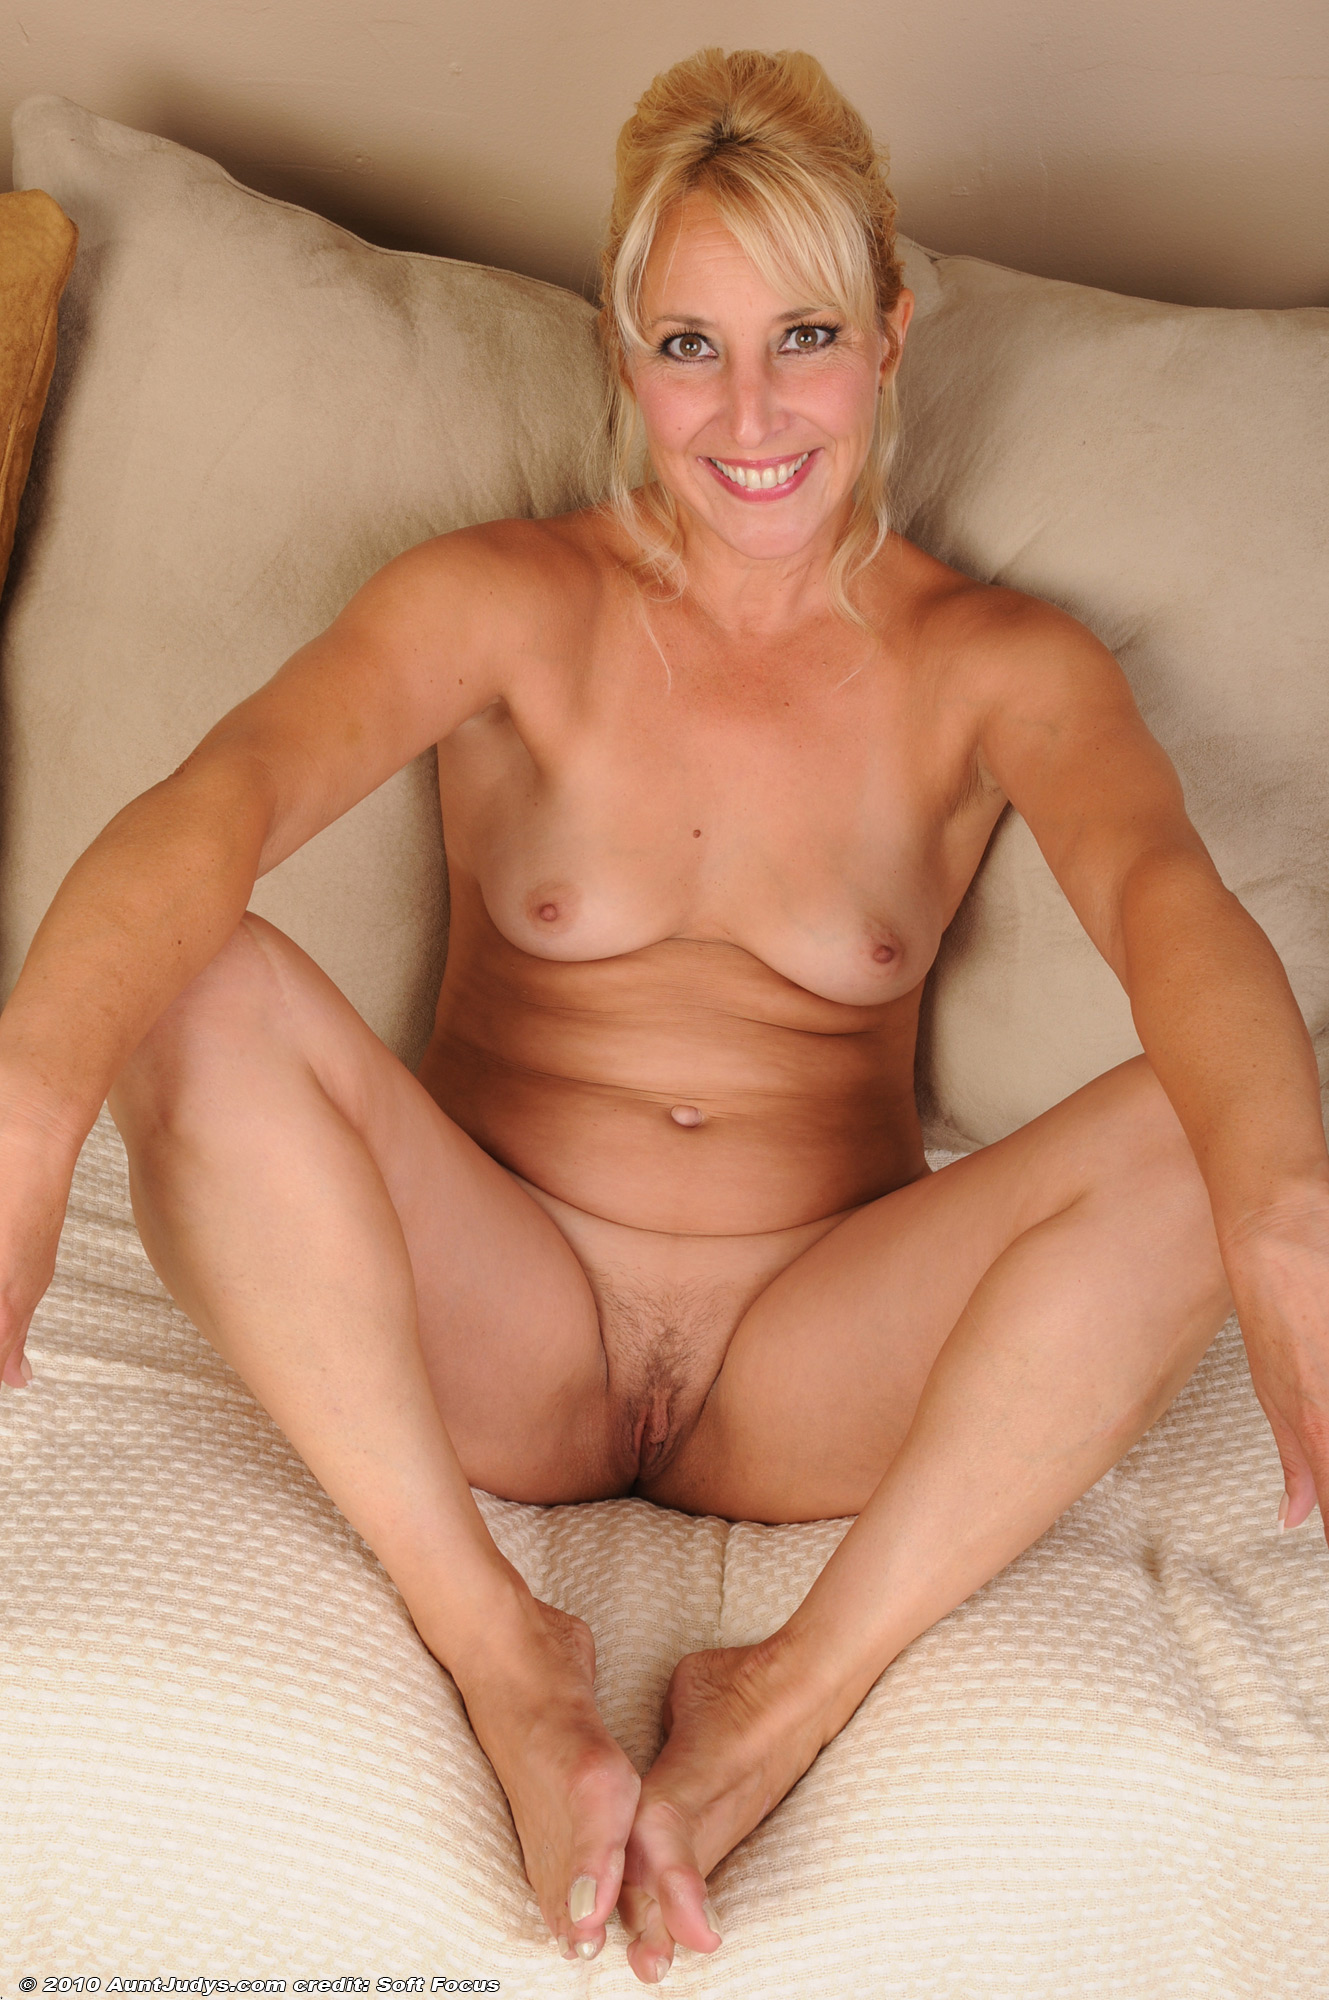 Beautiful mature naked women tumblr